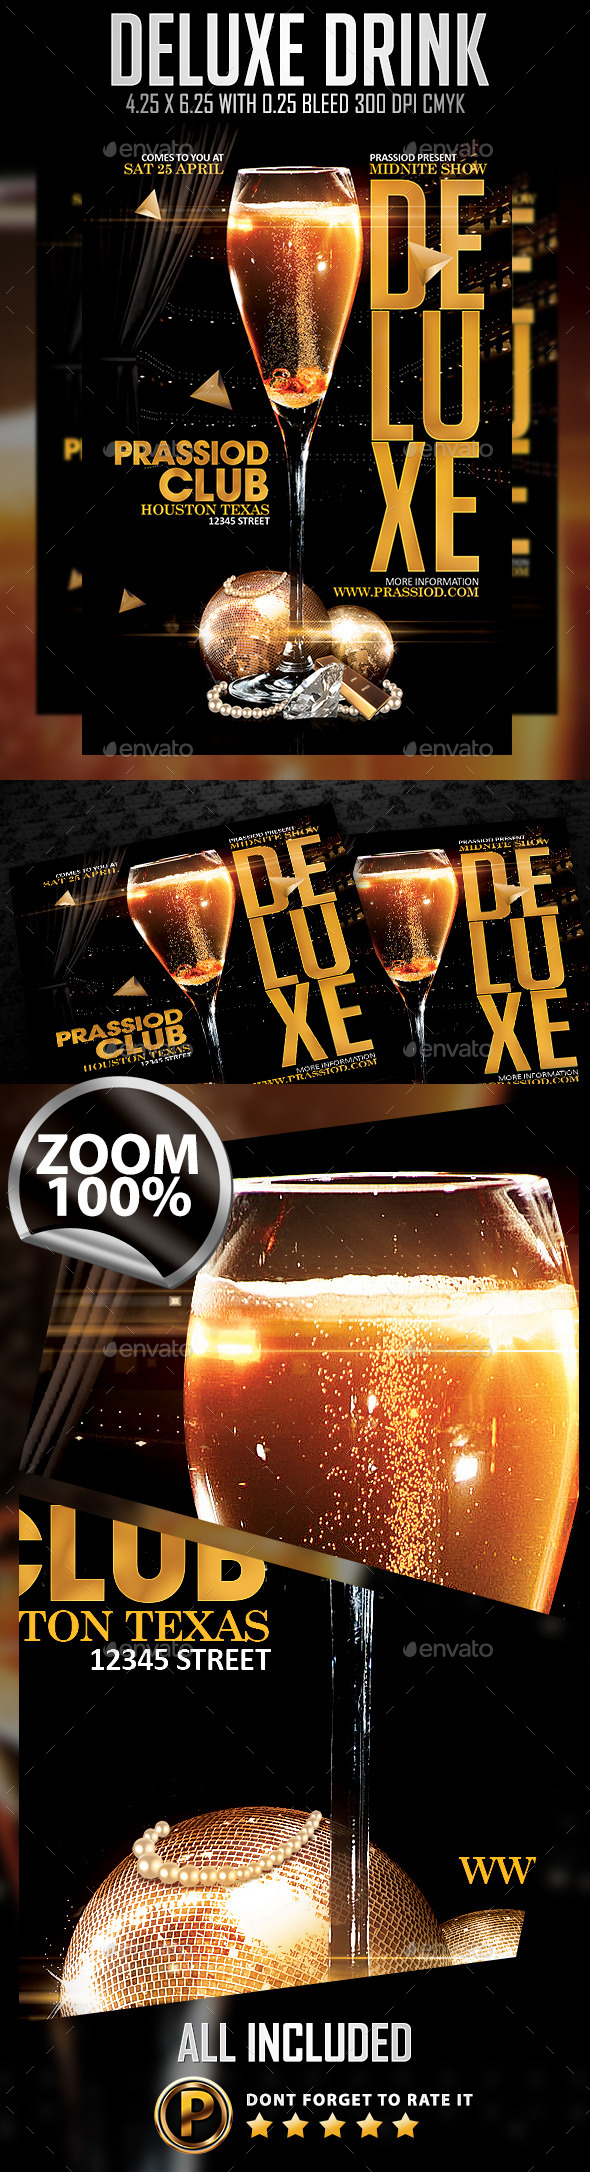 Deluxe Drink Flyer Template - Clubs & Parties Events